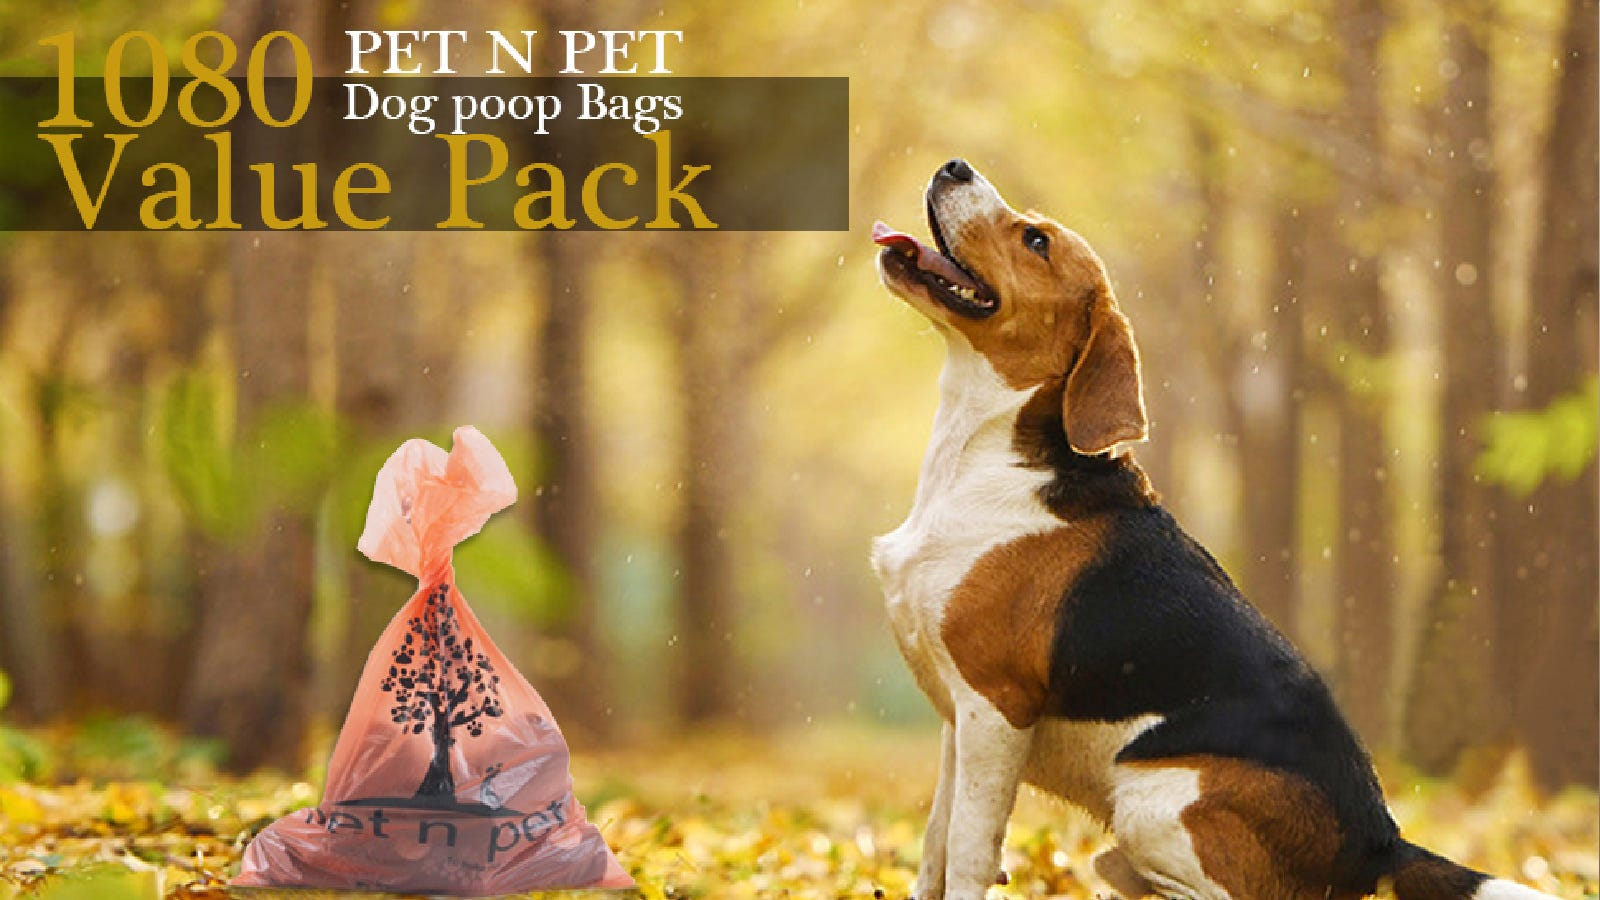 A dog in the woods along side of a full large pet n pep baggie.